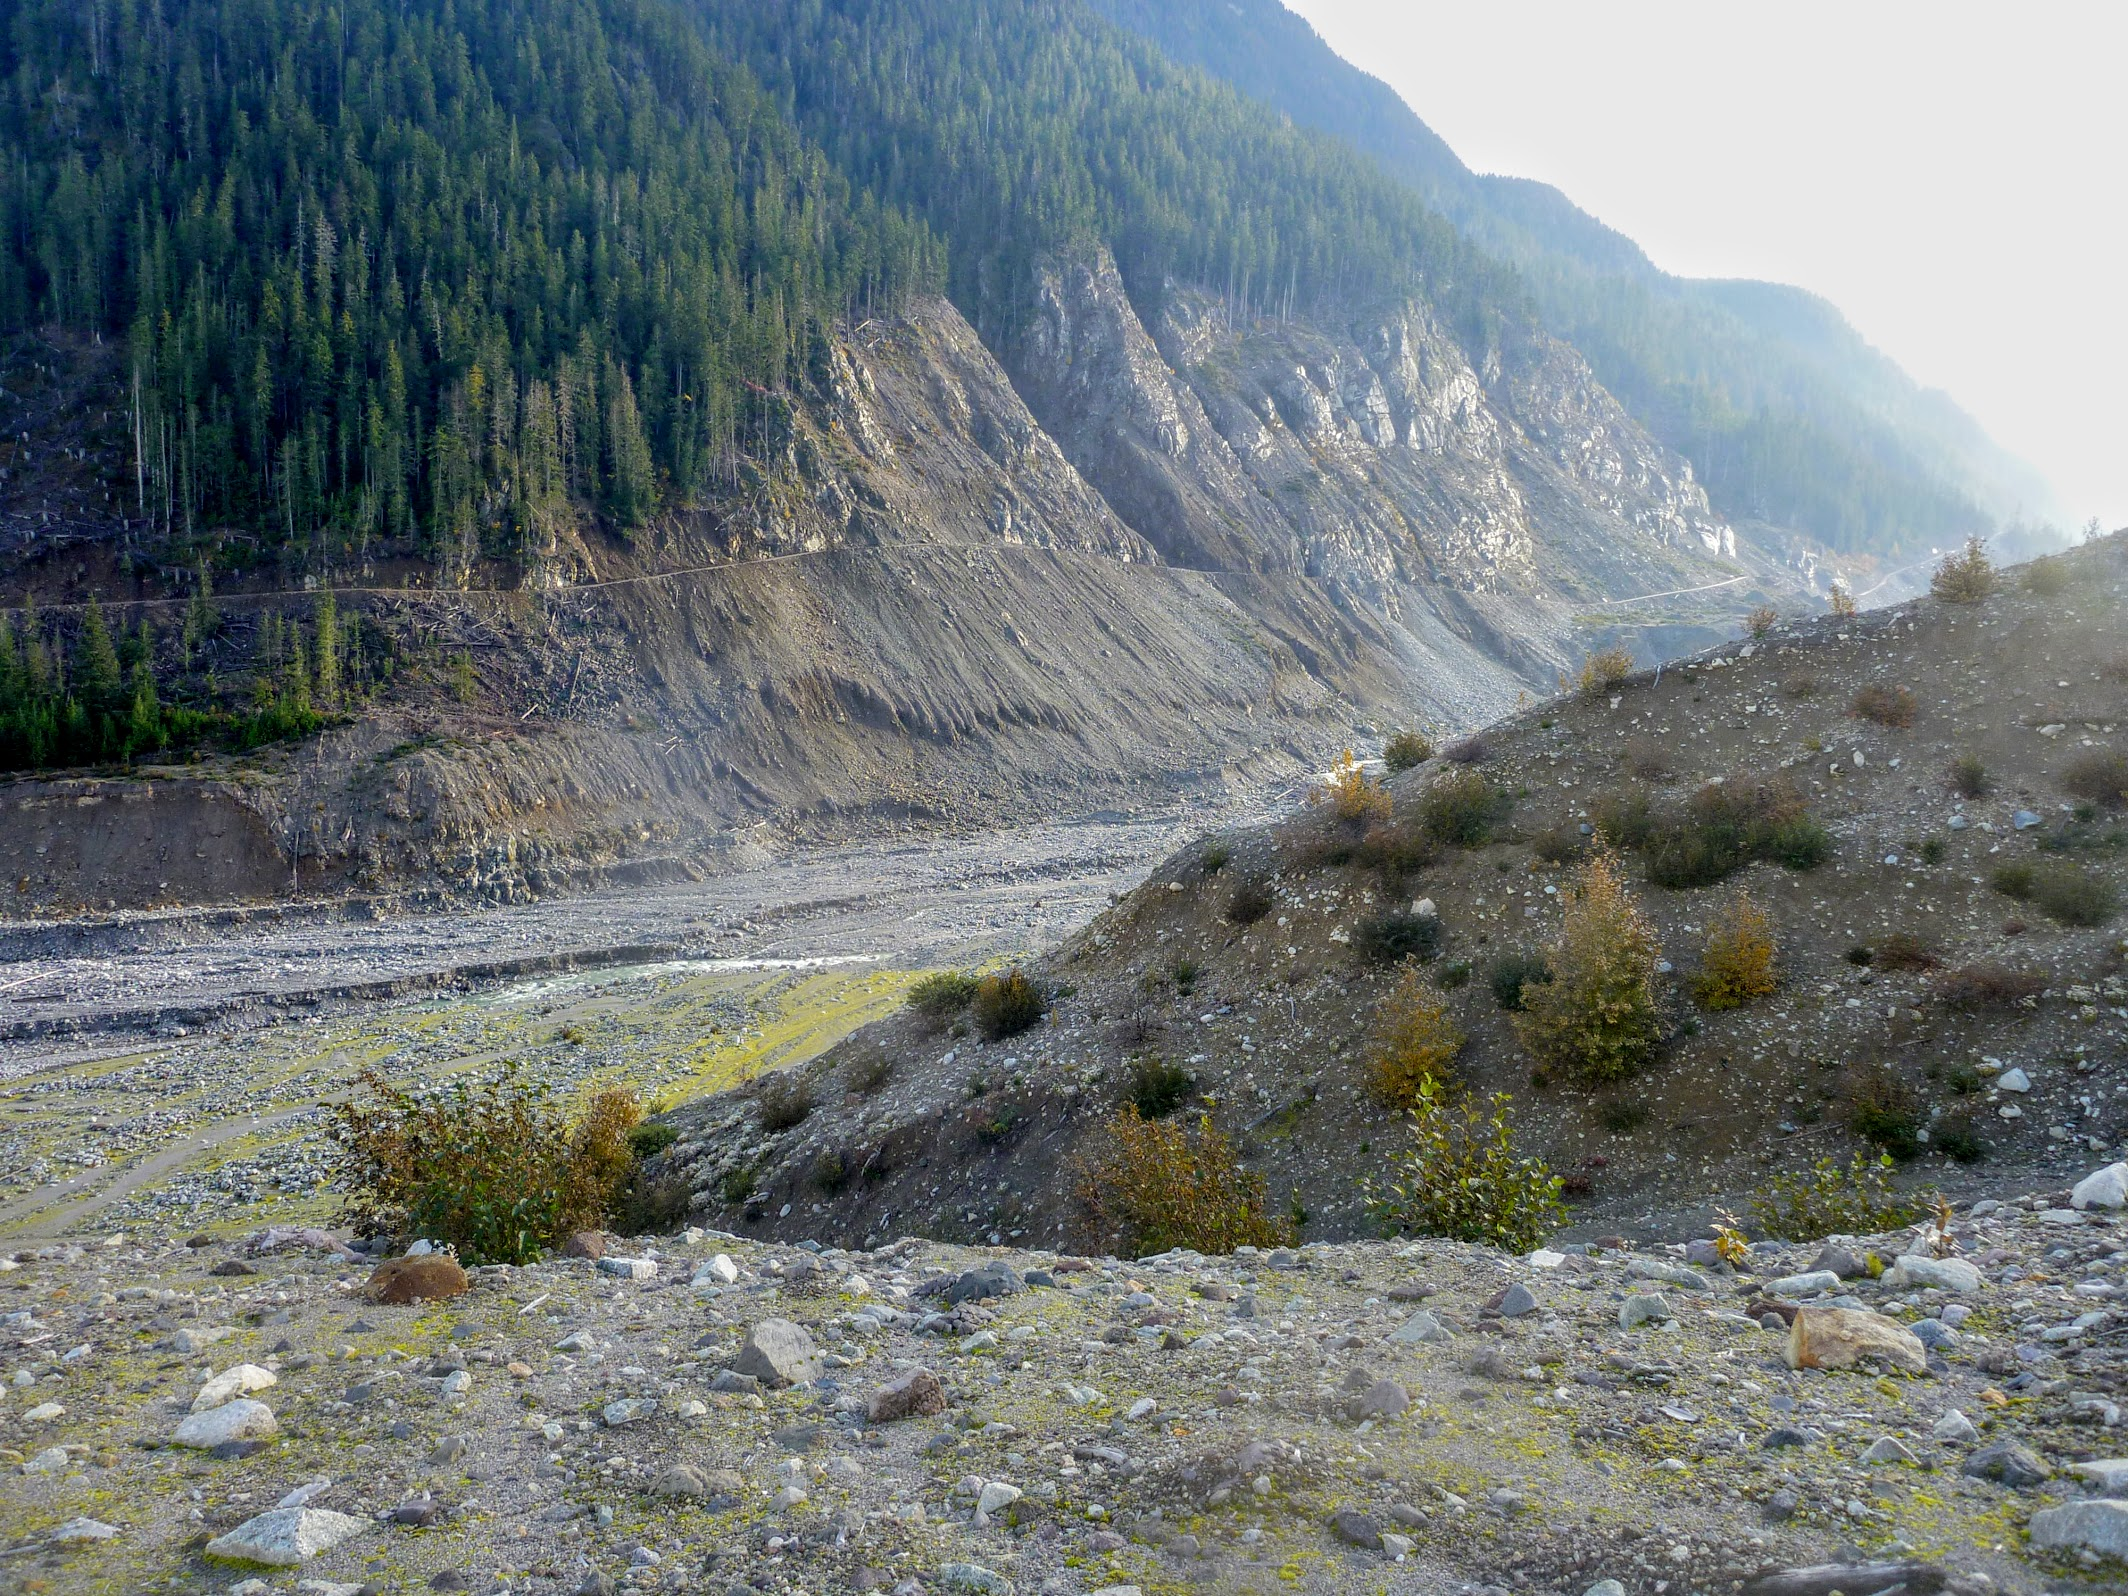 This gives a good view of where the landslide sloshed up the side of Meager Creek. It came down Capricorn Creek (on the right), crossed the Meager and made it up 300 m or so, taking all the trees and all the soil such that few new trees have started.